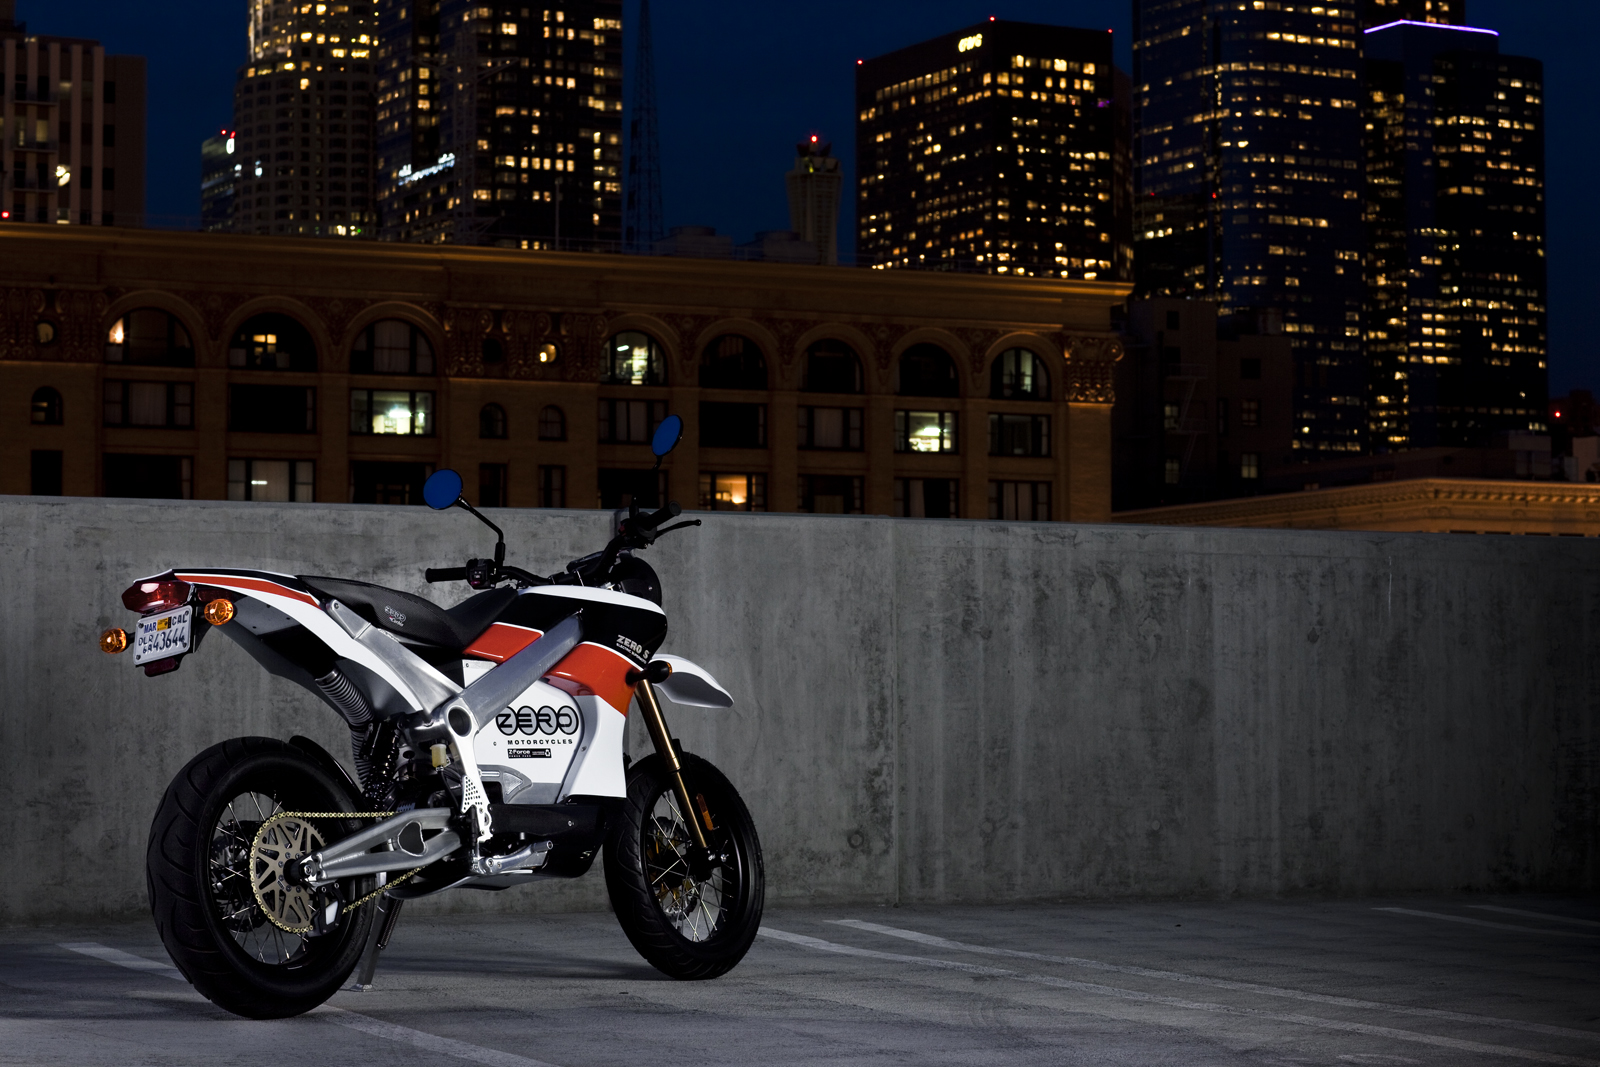 '.2010 Zero S Electric Motorcycle: Los Angeles - City Lights Back.'